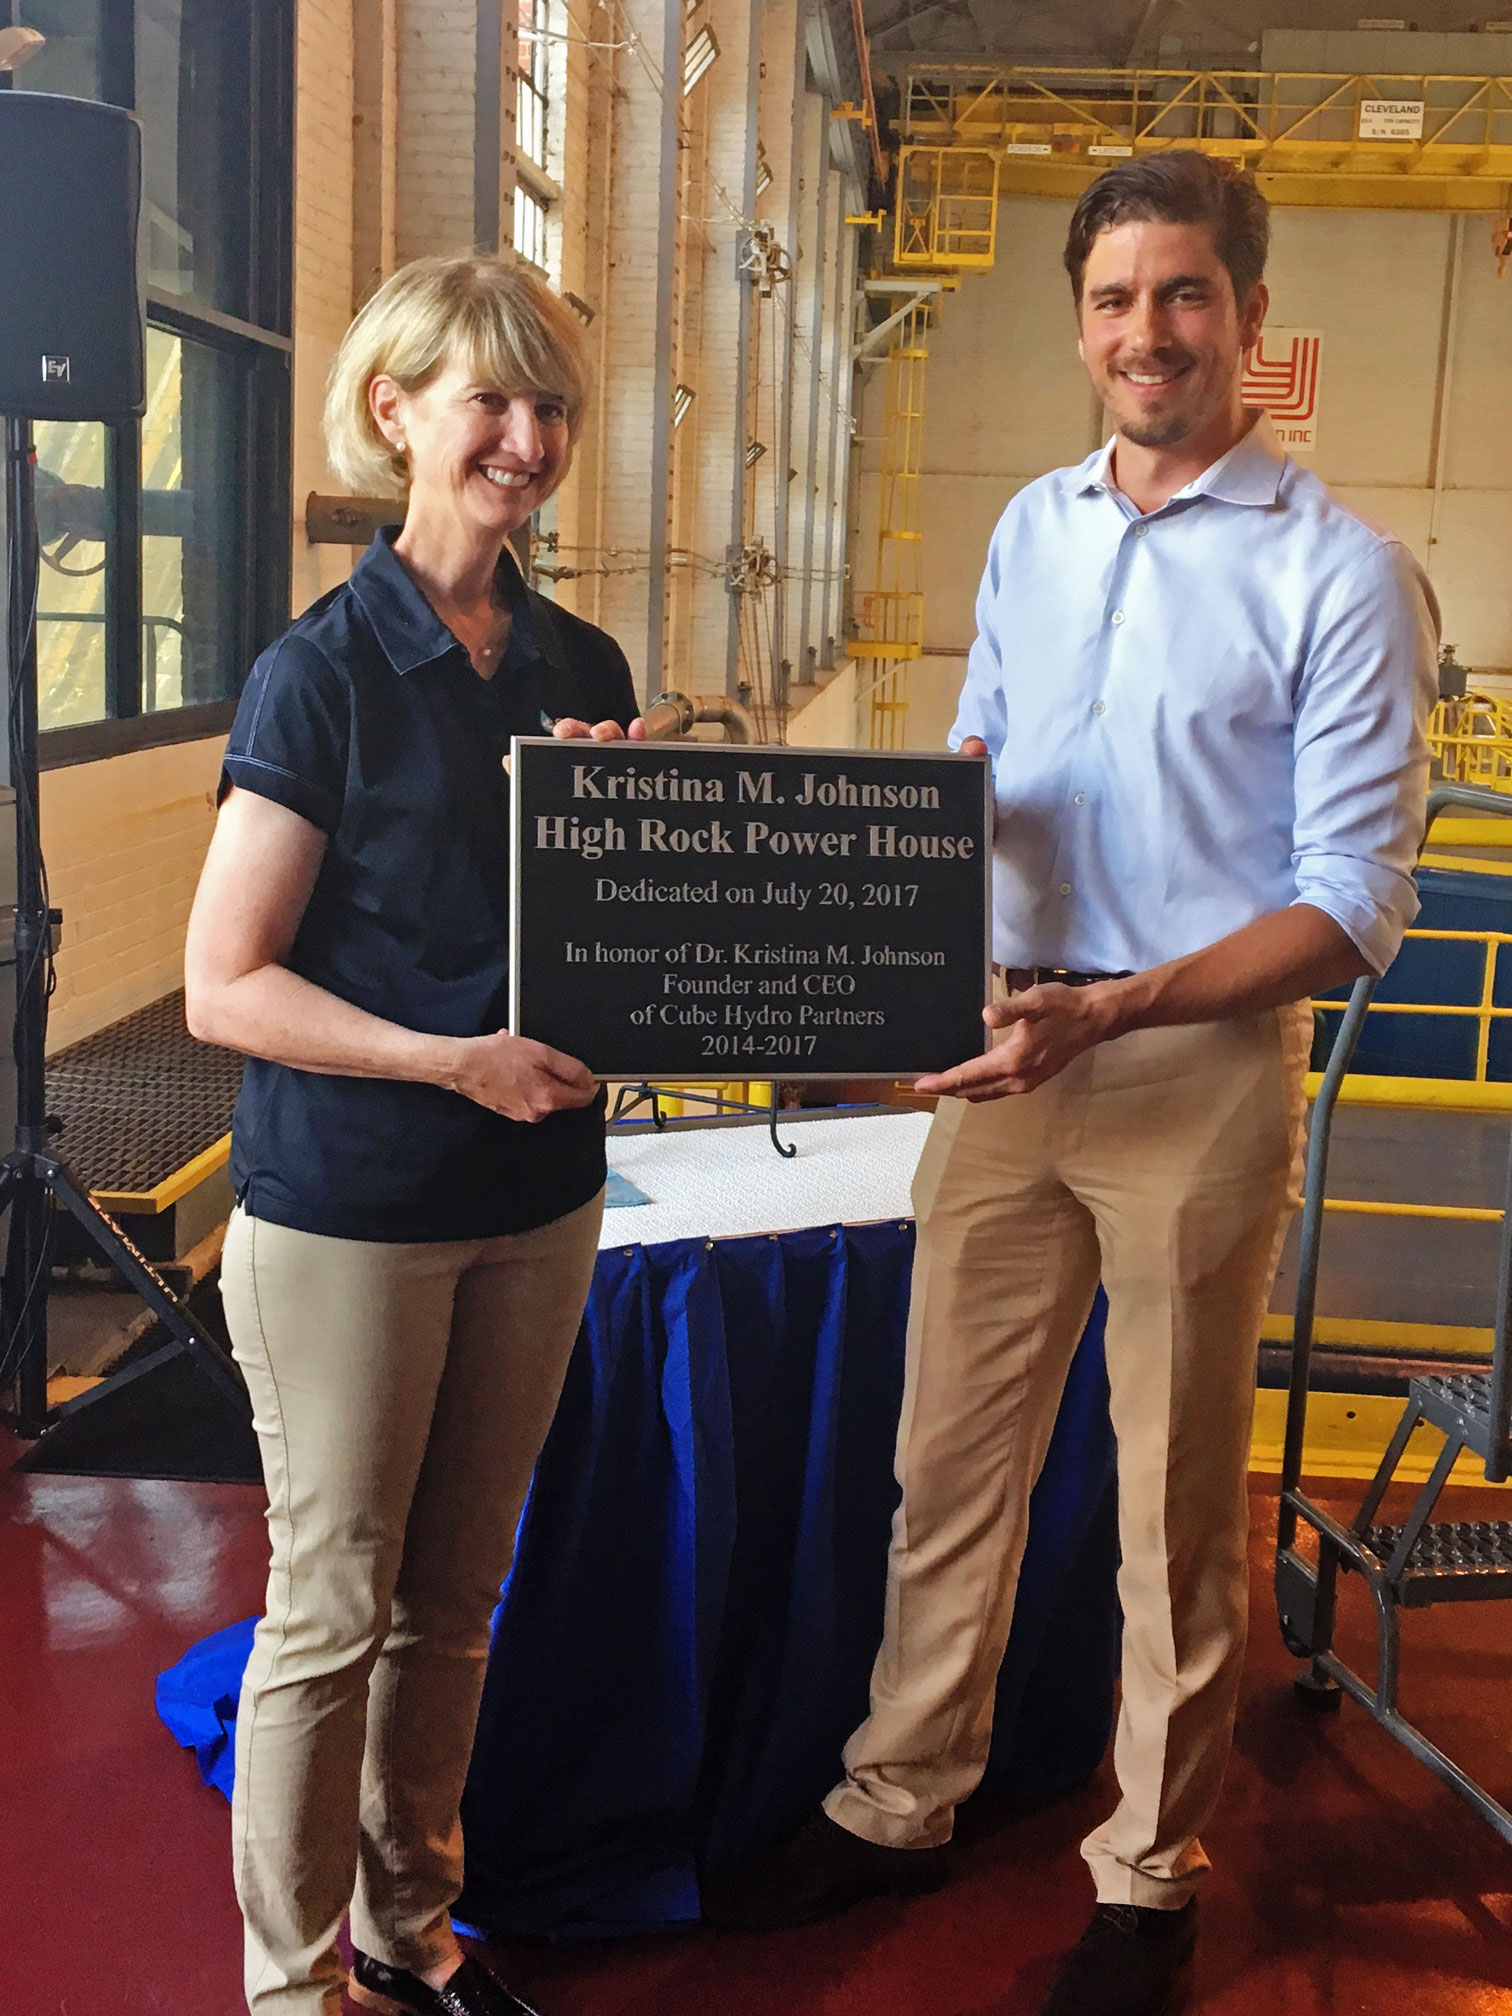 Dr. Kristina M Johnson receives a plaque commemorating the High Rock Power House to her inside the facility.